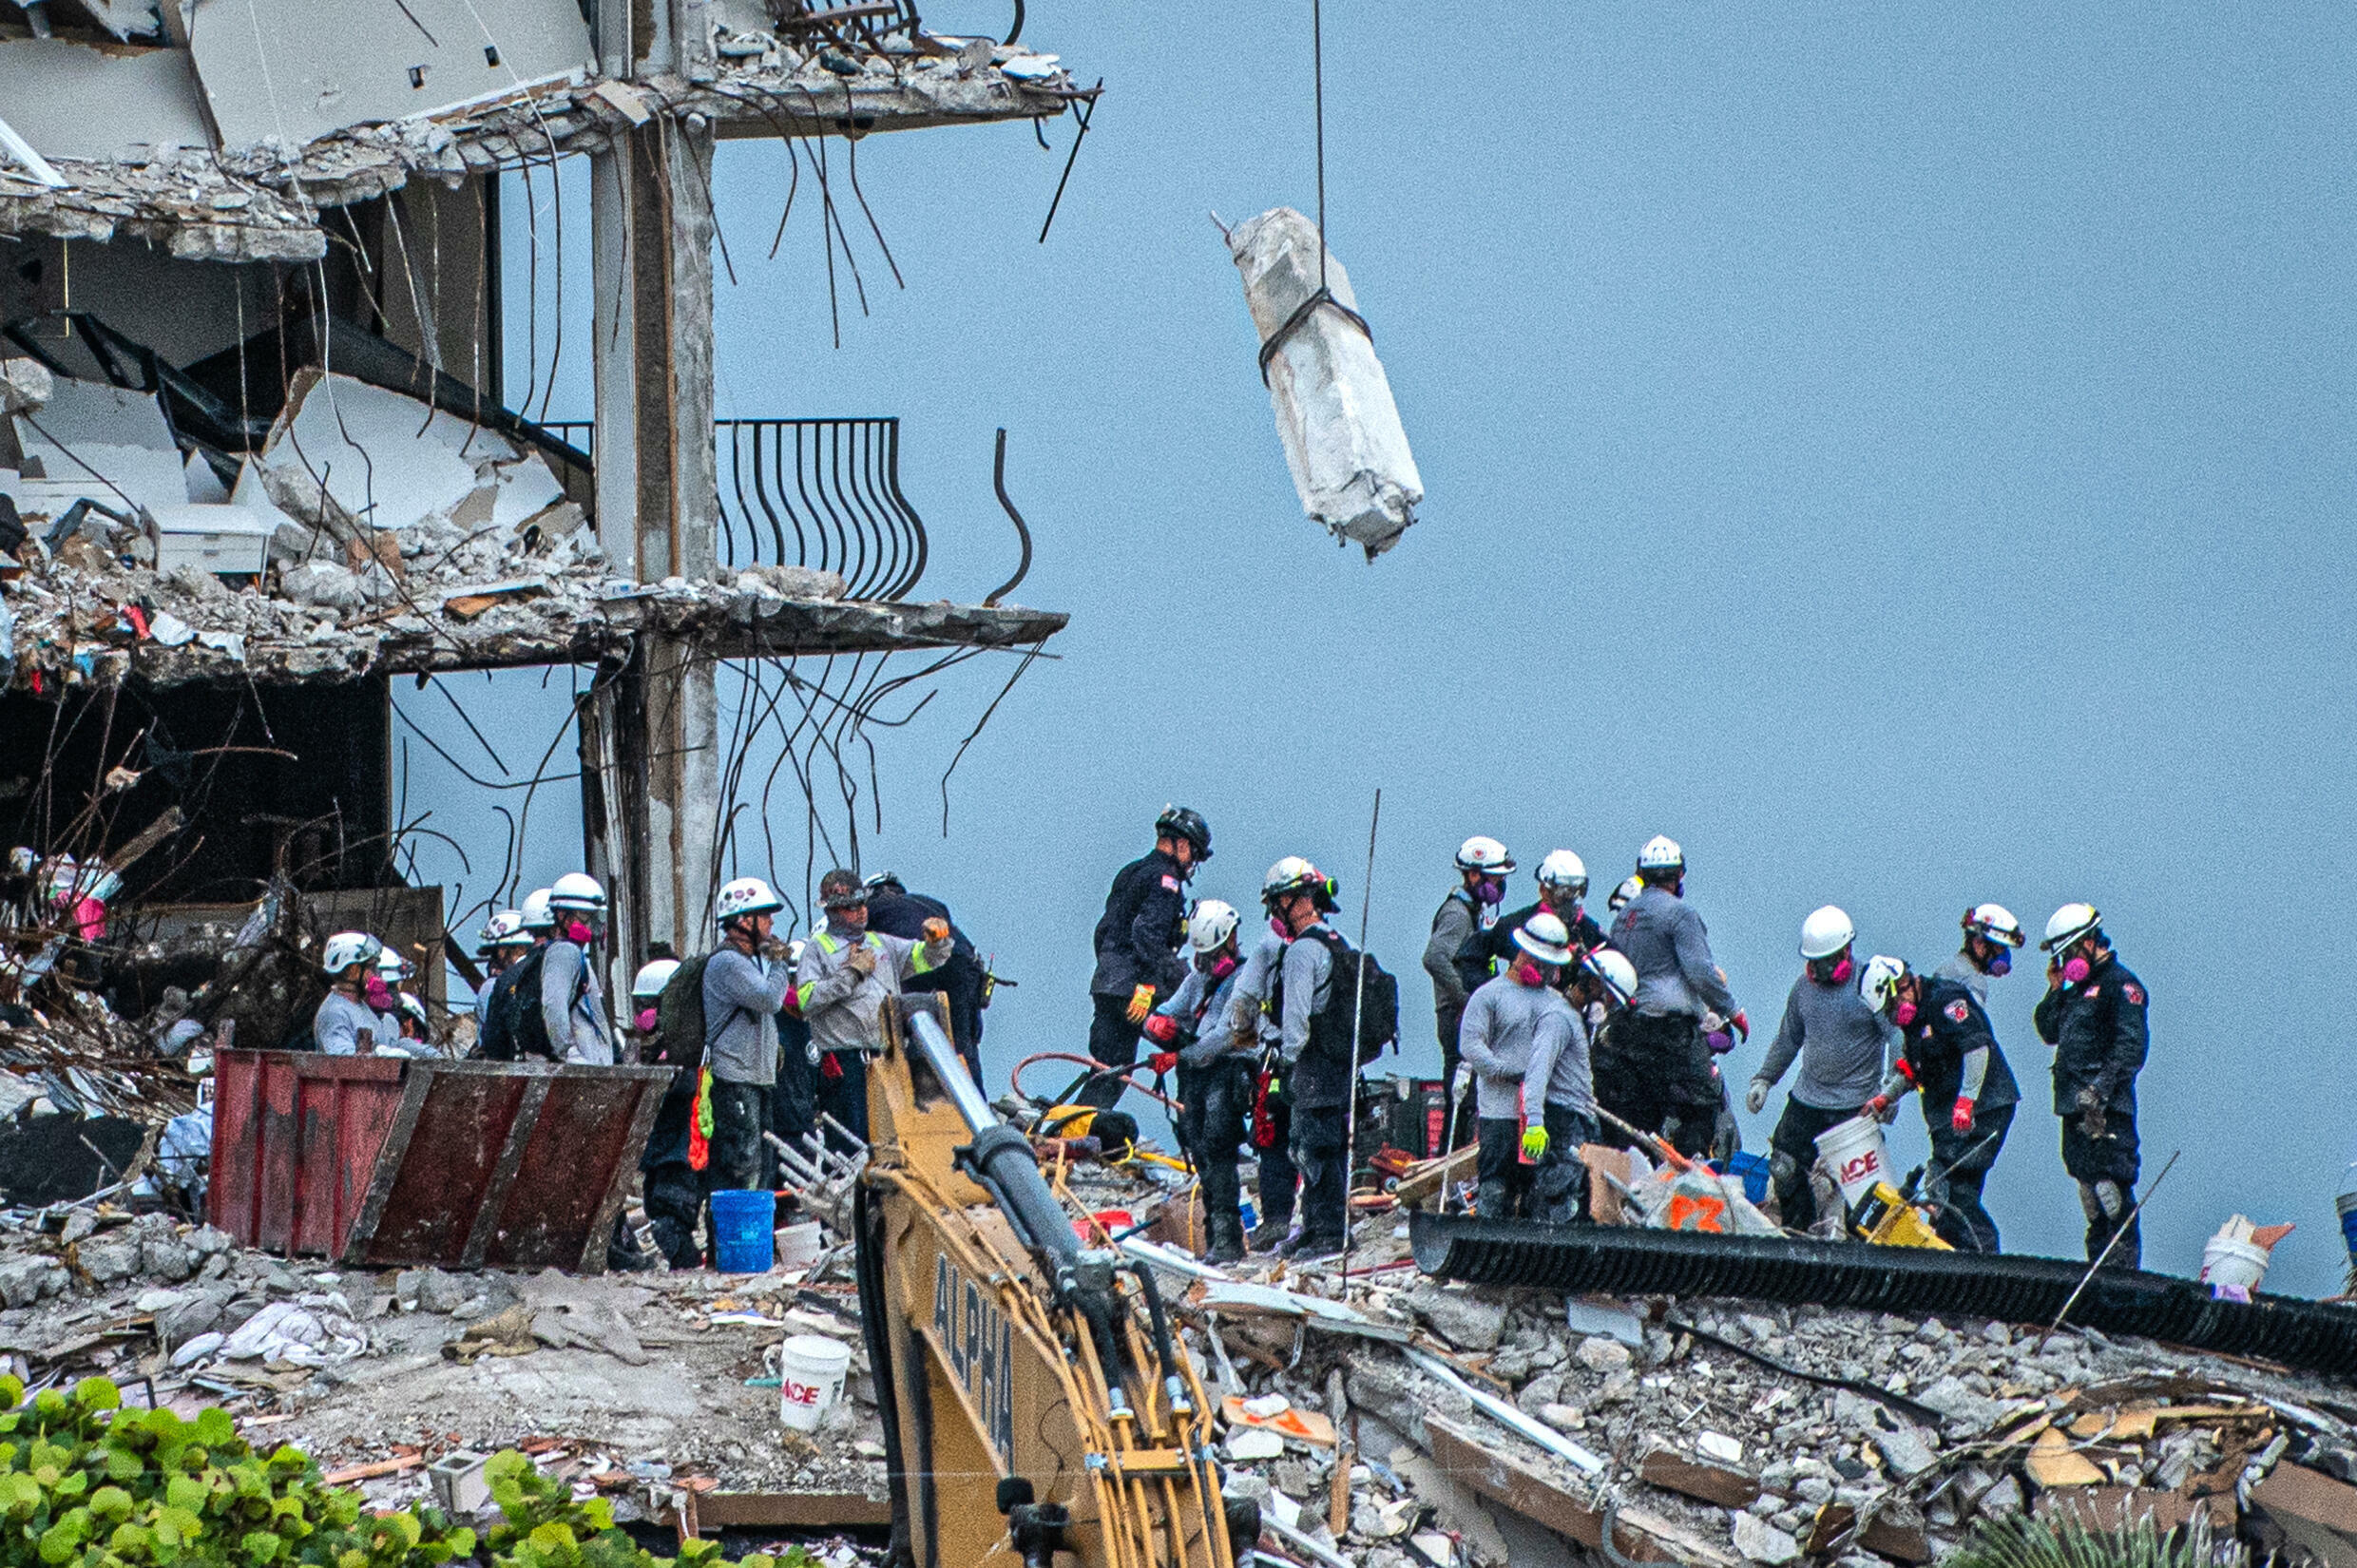 Search and Rescue teams look for survivors in the partially collapsed 12-story Champlain Towers South condo building on June 30, 2021 in Surfside, Florida